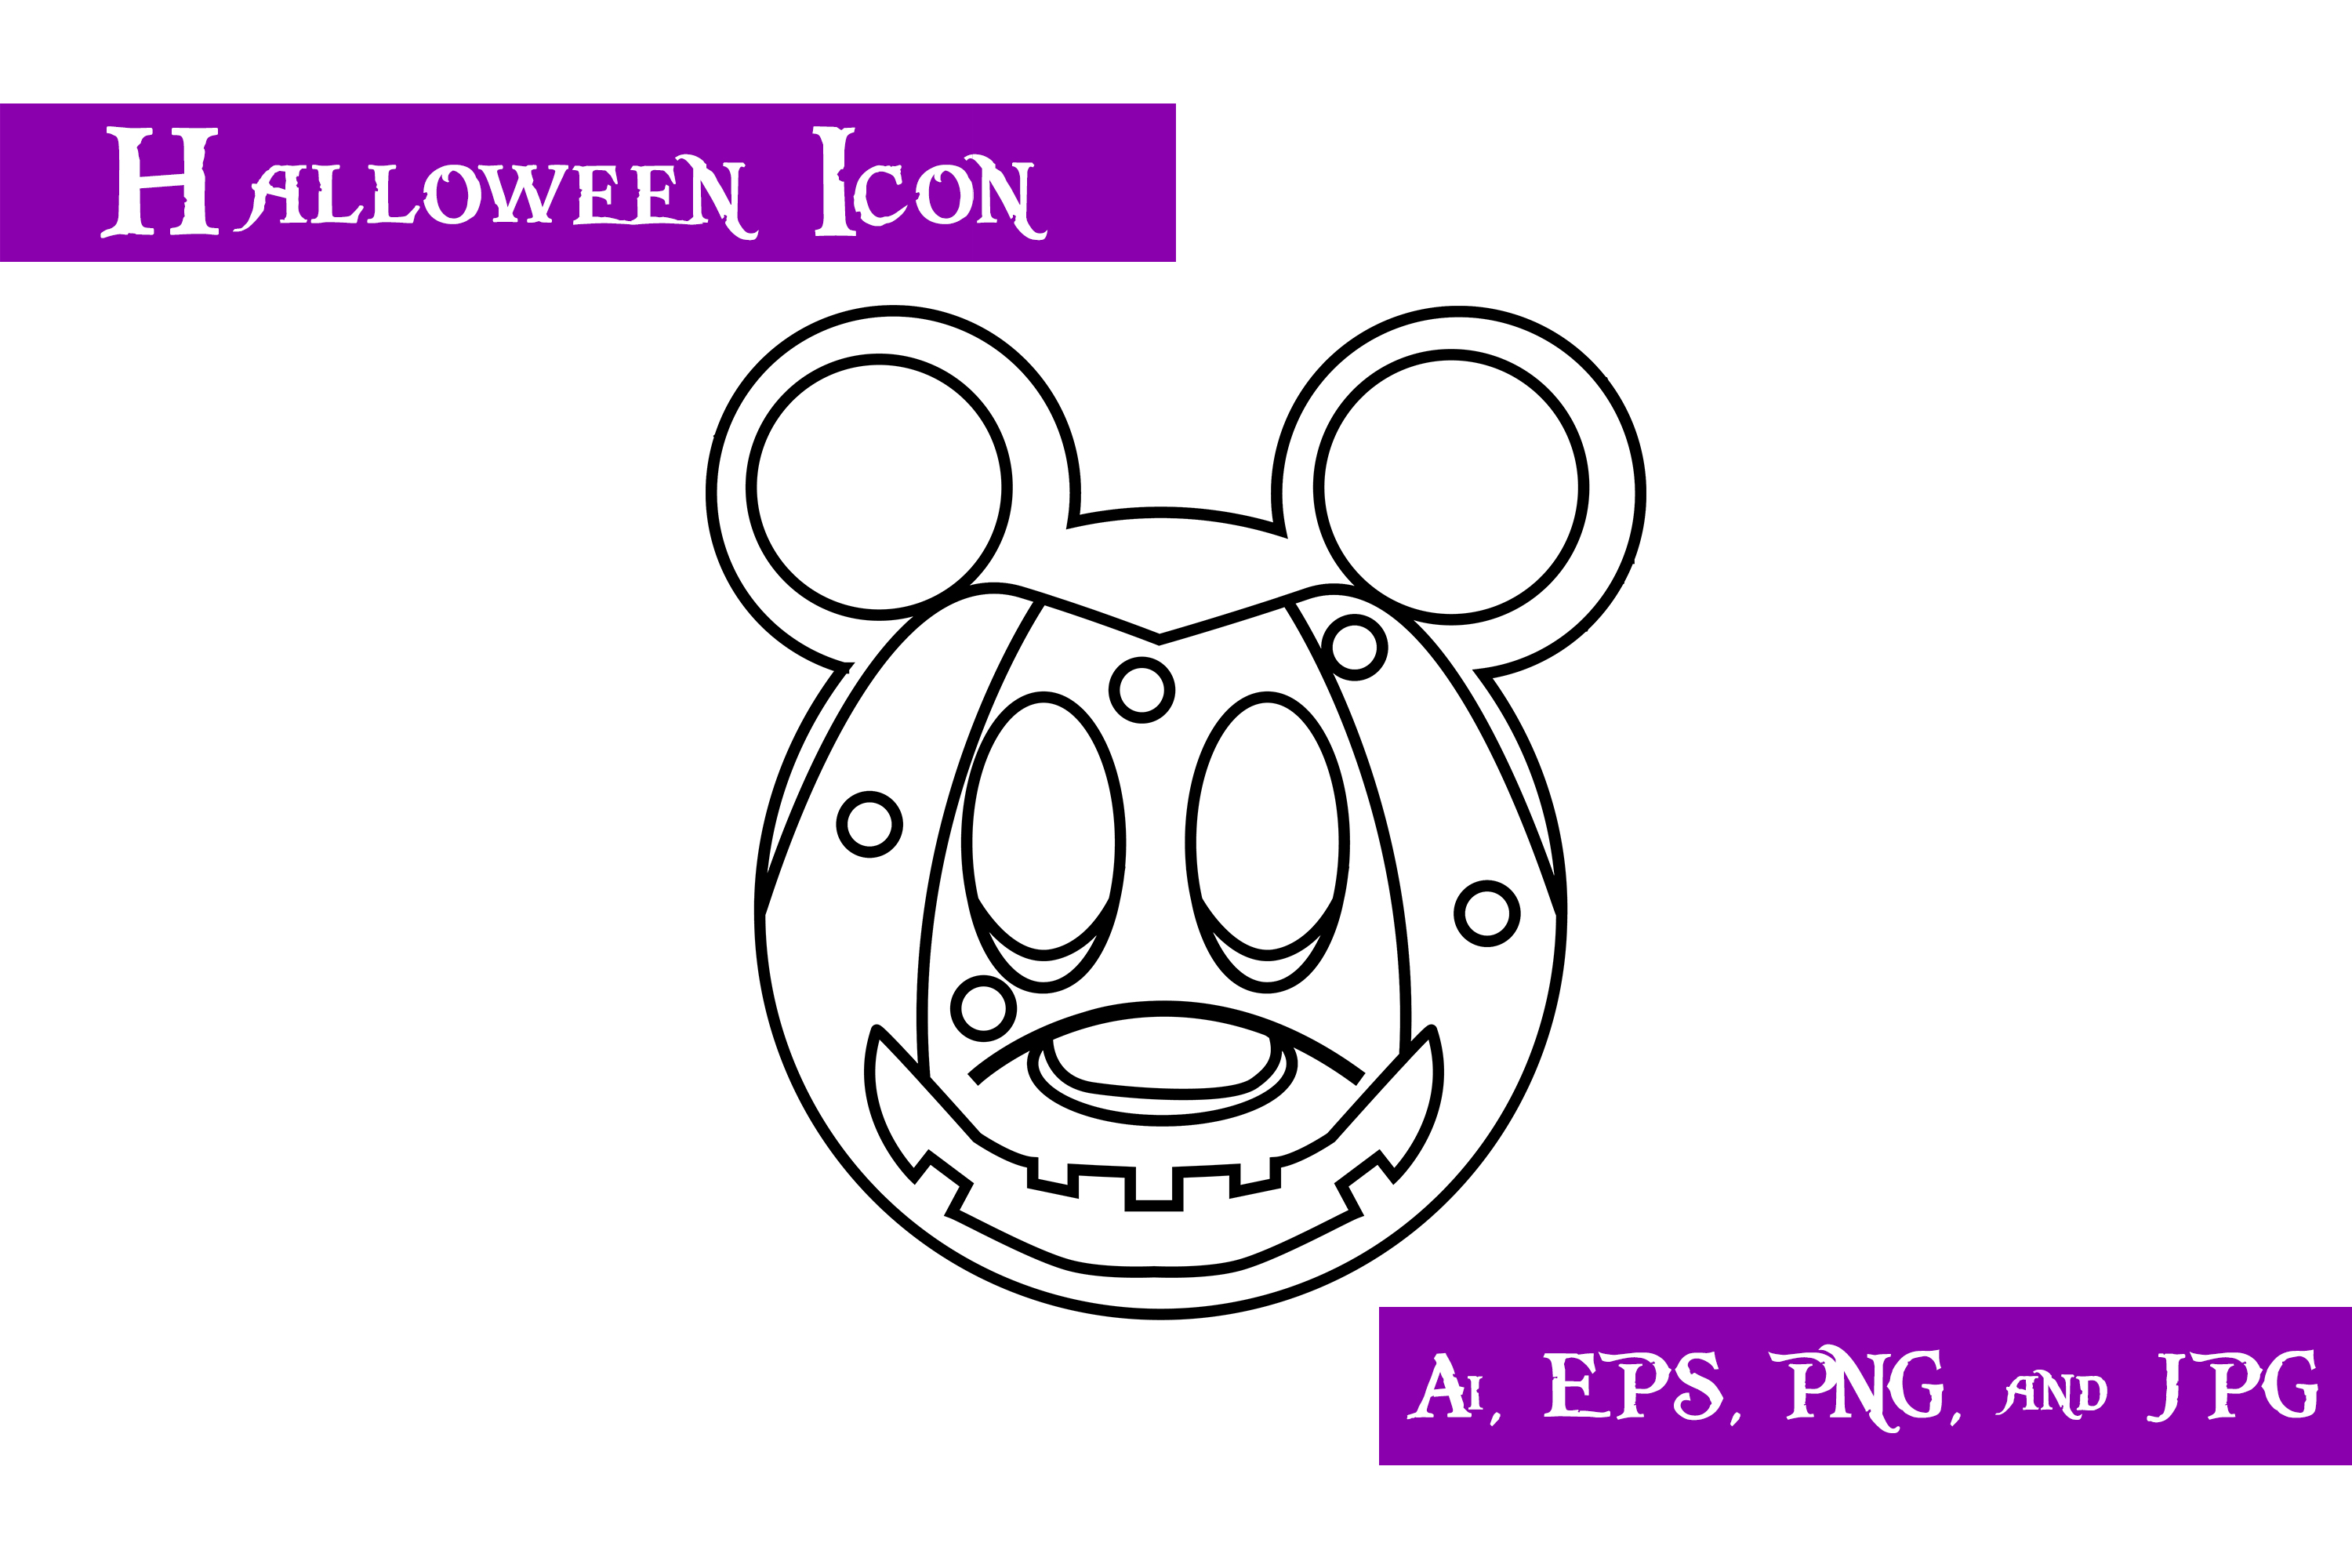 Download Free Mouse Mask Icon Graphic By Purplespoonpirates Creative Fabrica for Cricut Explore, Silhouette and other cutting machines.